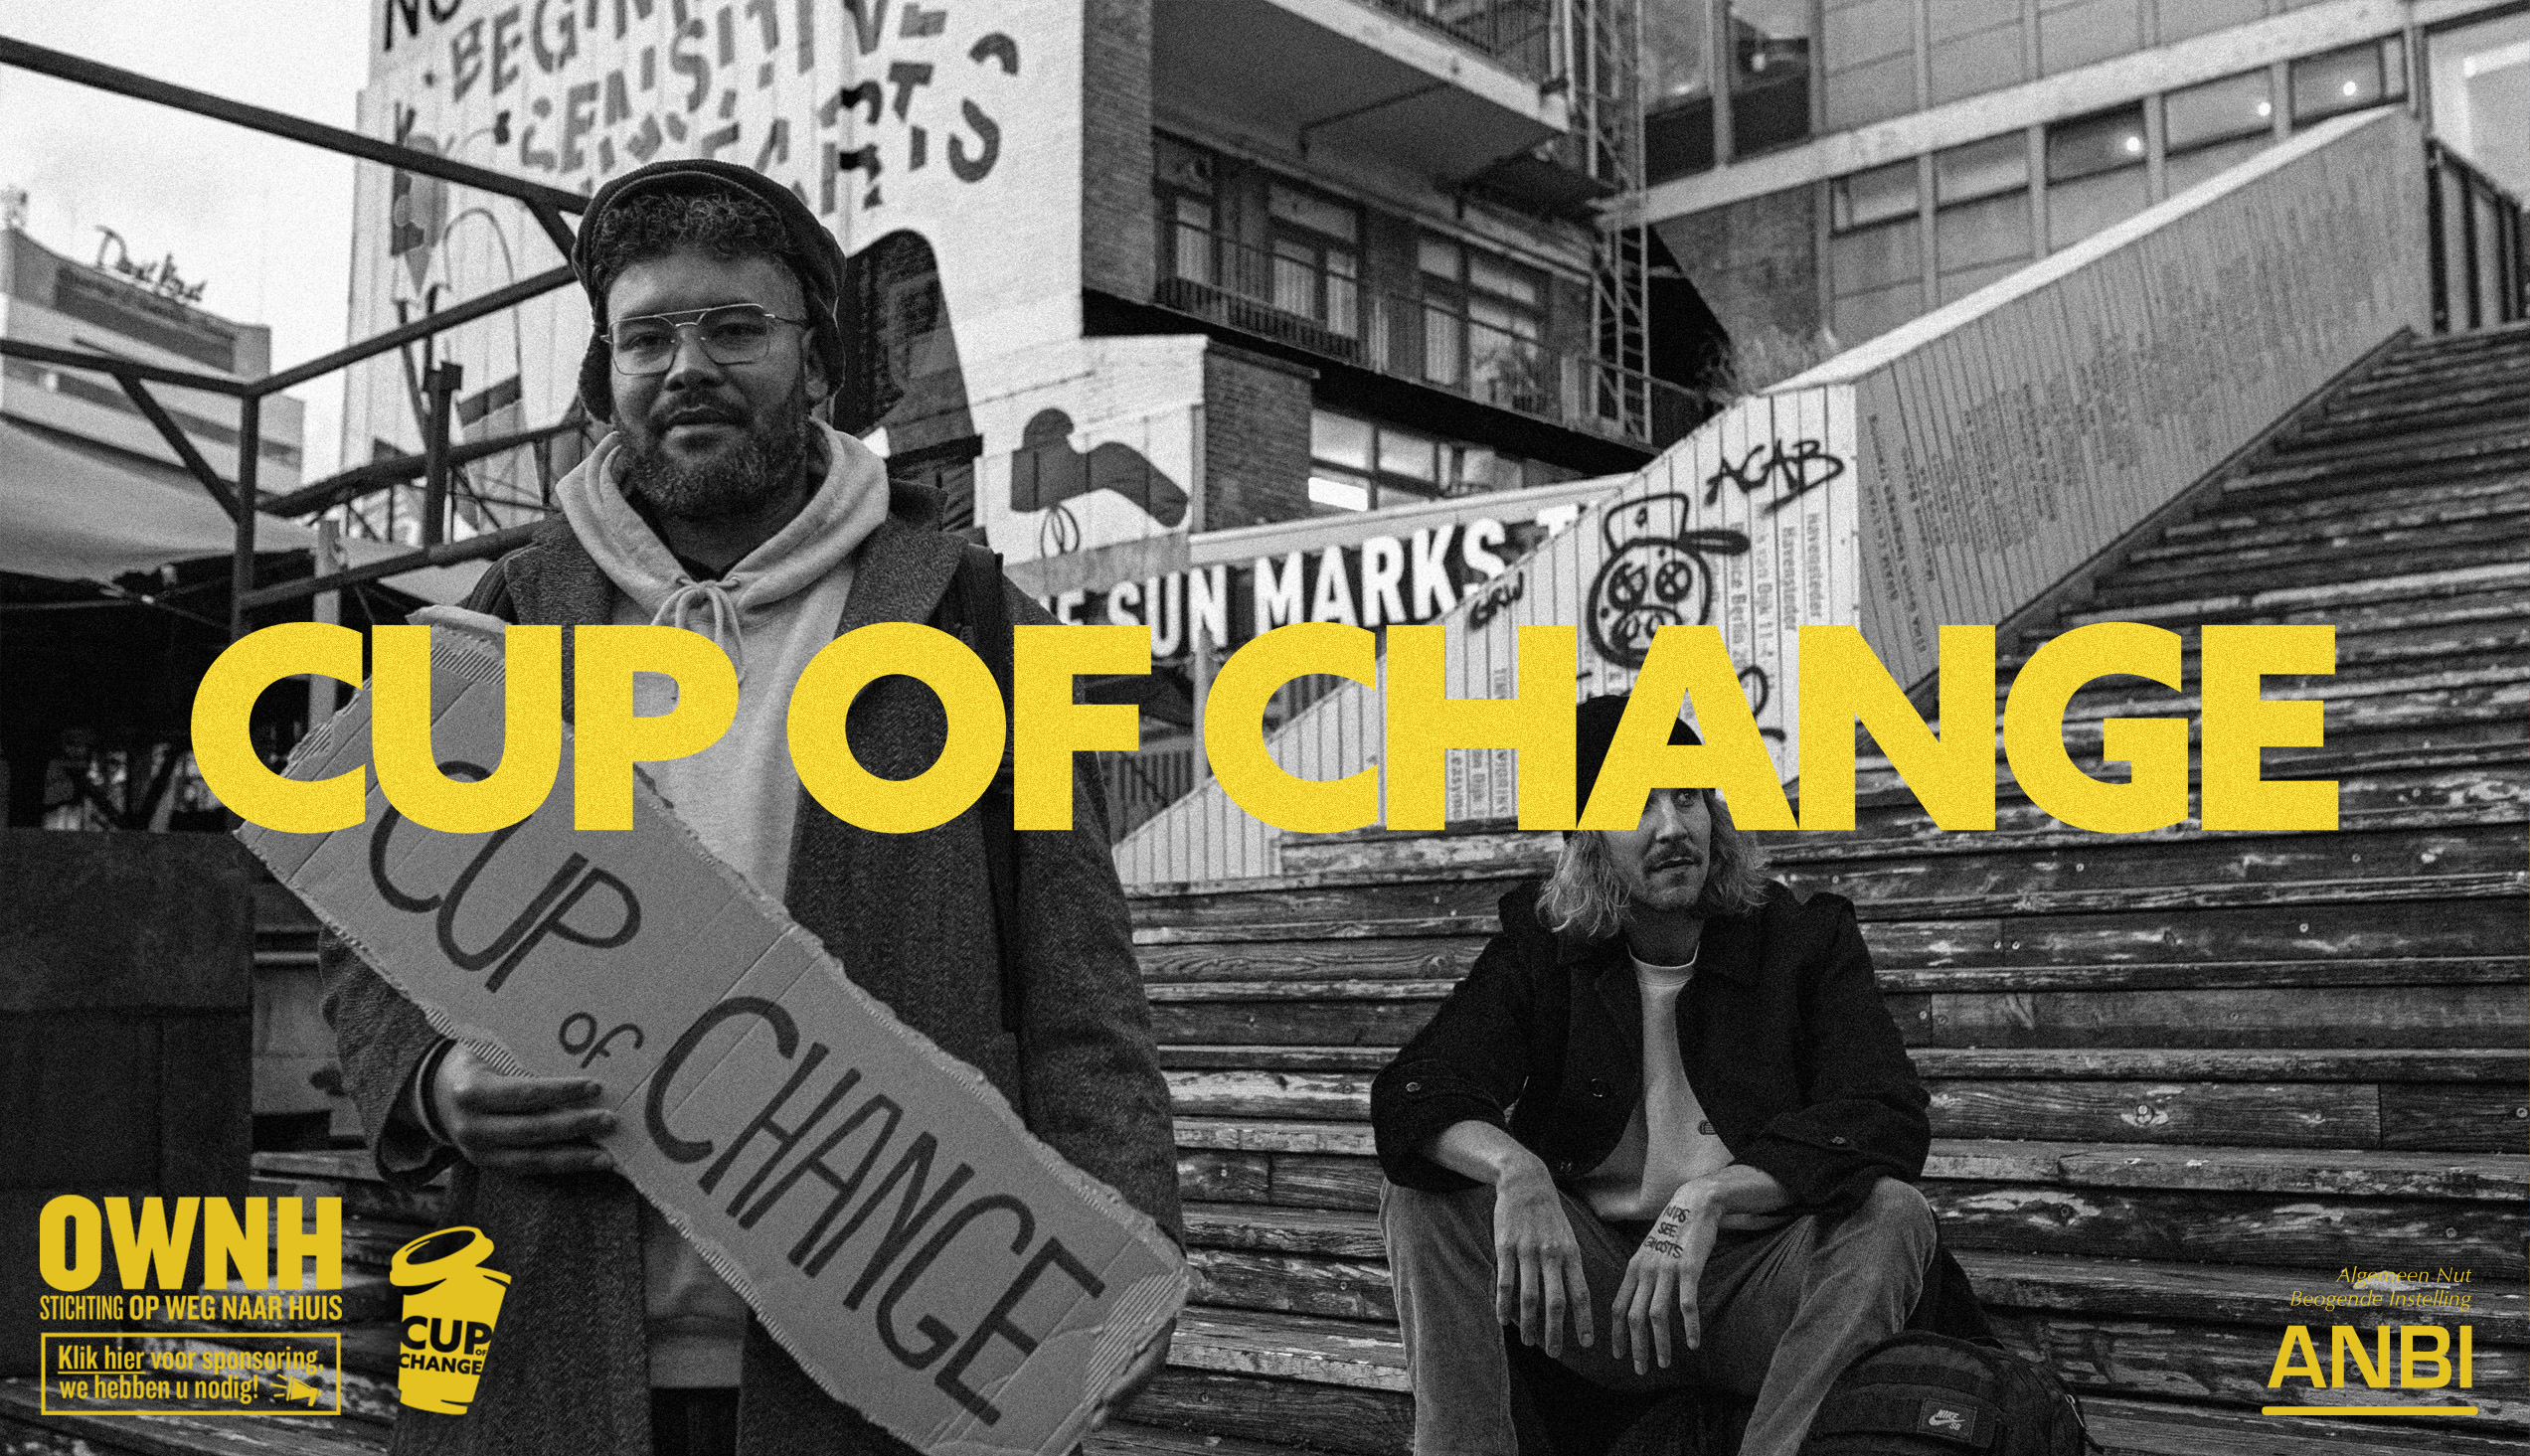 Cup of Change